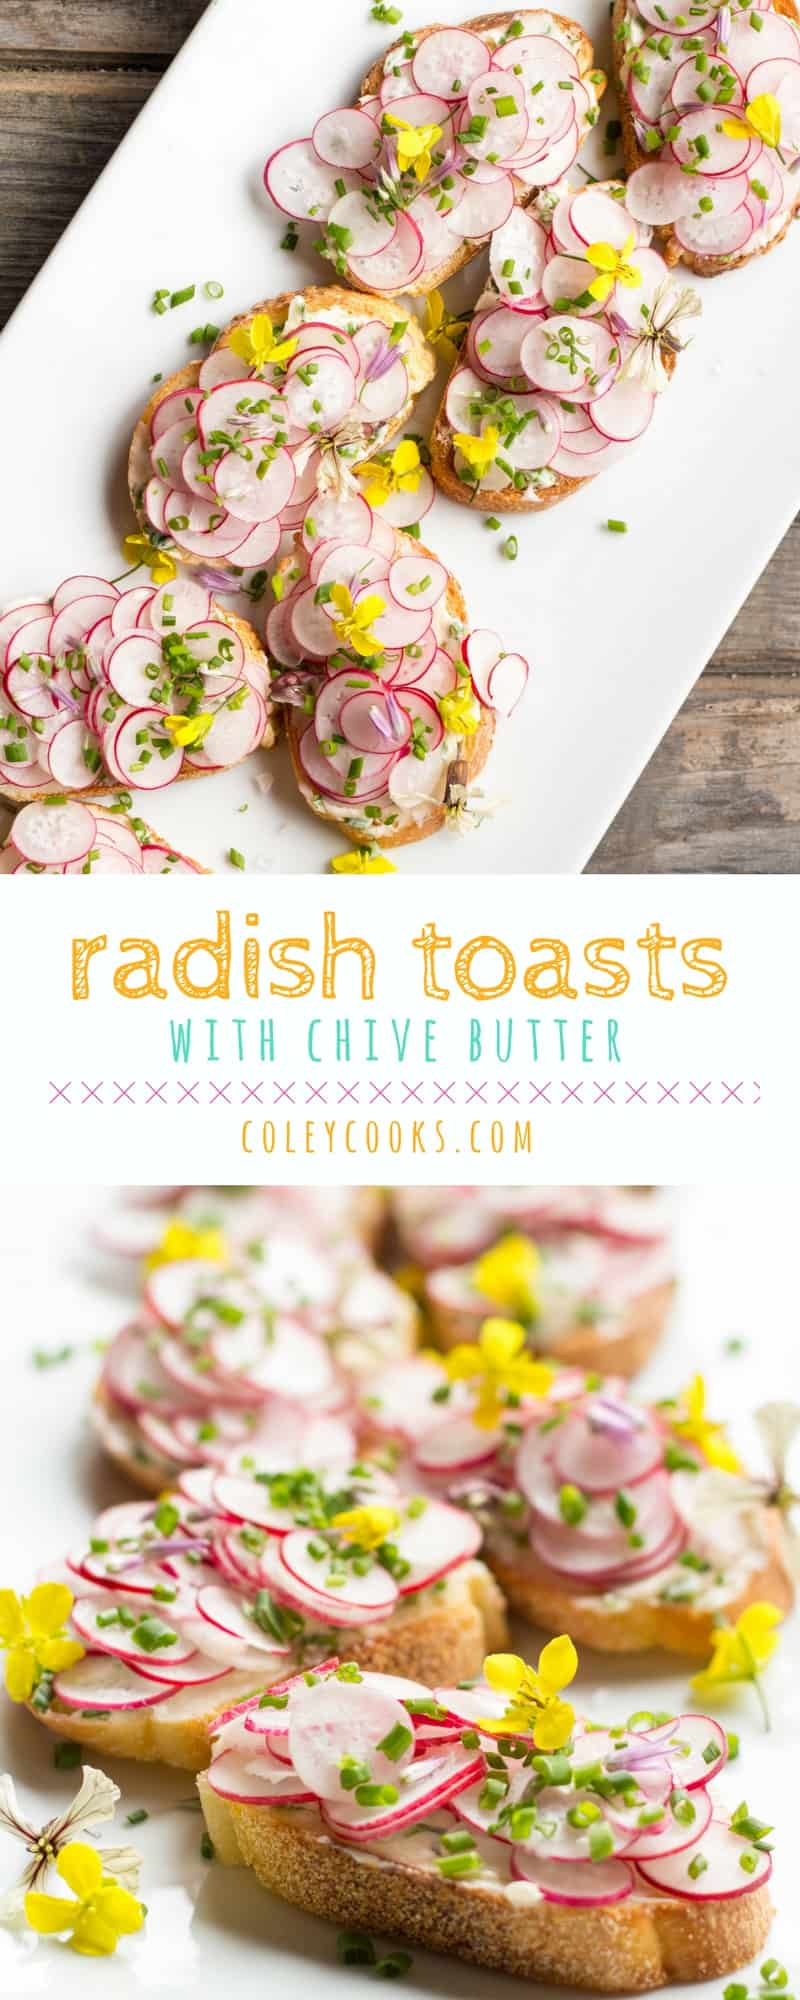 RADISH TOASTS with CHIVE BUTTER | Radishes and butter are a classic French combination. Fresh chives makes it taste even better. Easy spring appetizer recipe! | ColeyCooks.com